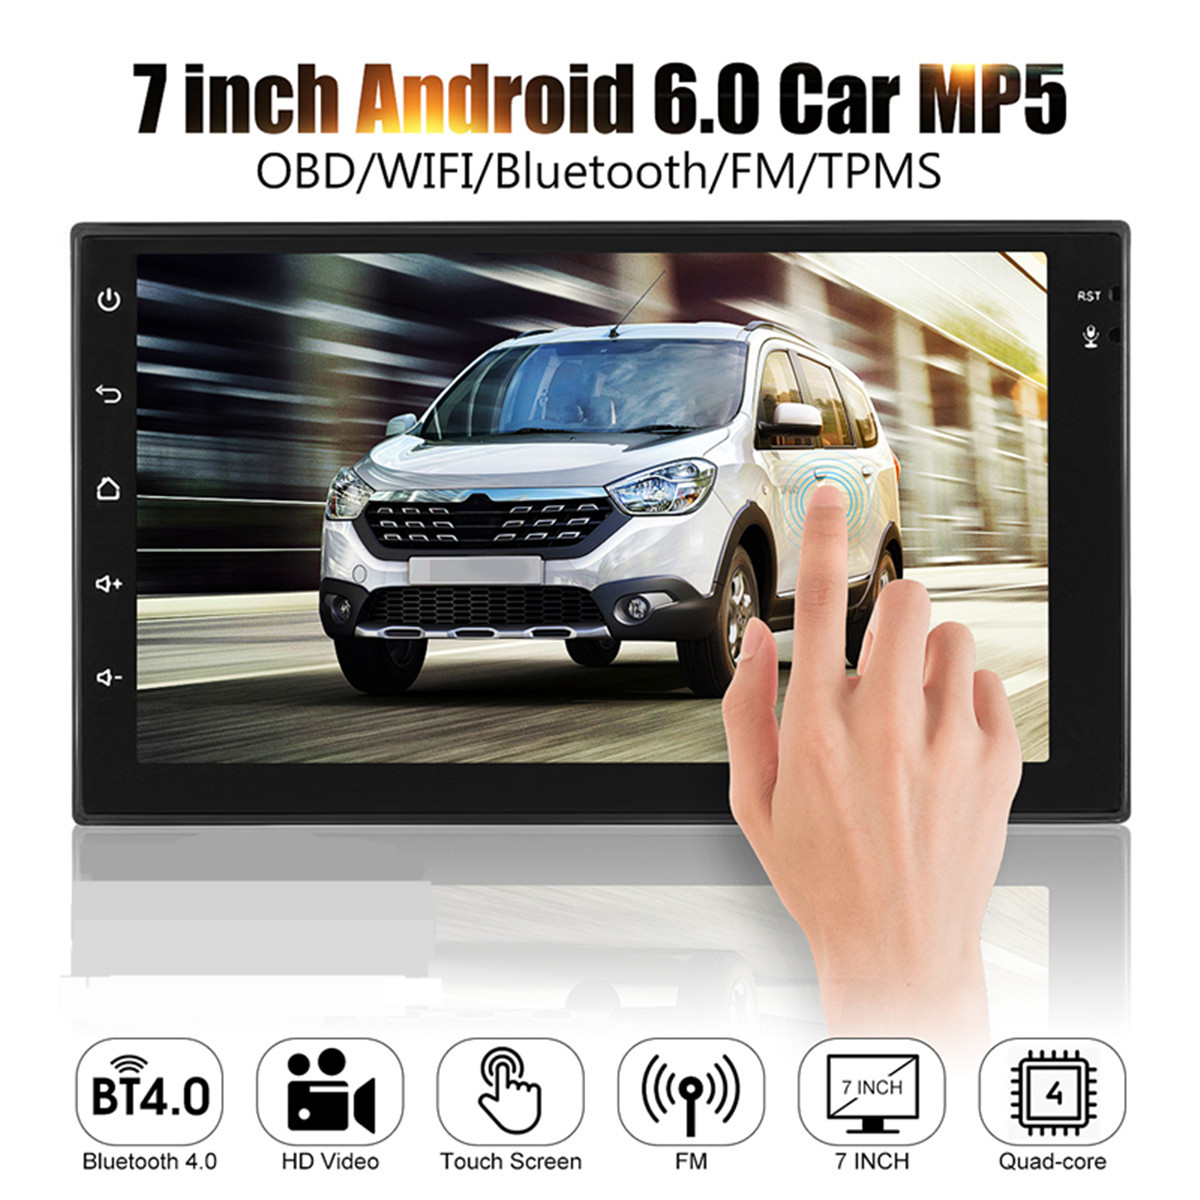 KROAK 7 inch Touch Screen Android 6.0 1G+16G System Car MP5 Player OBD Bluetooth 4.0 FM MP5 With 170 Degree Car Rearview Camera hot 7020g car bluetooth audio stereo mp5 player with rearview camera 7 inch touch screen gps navigation fm function with camera